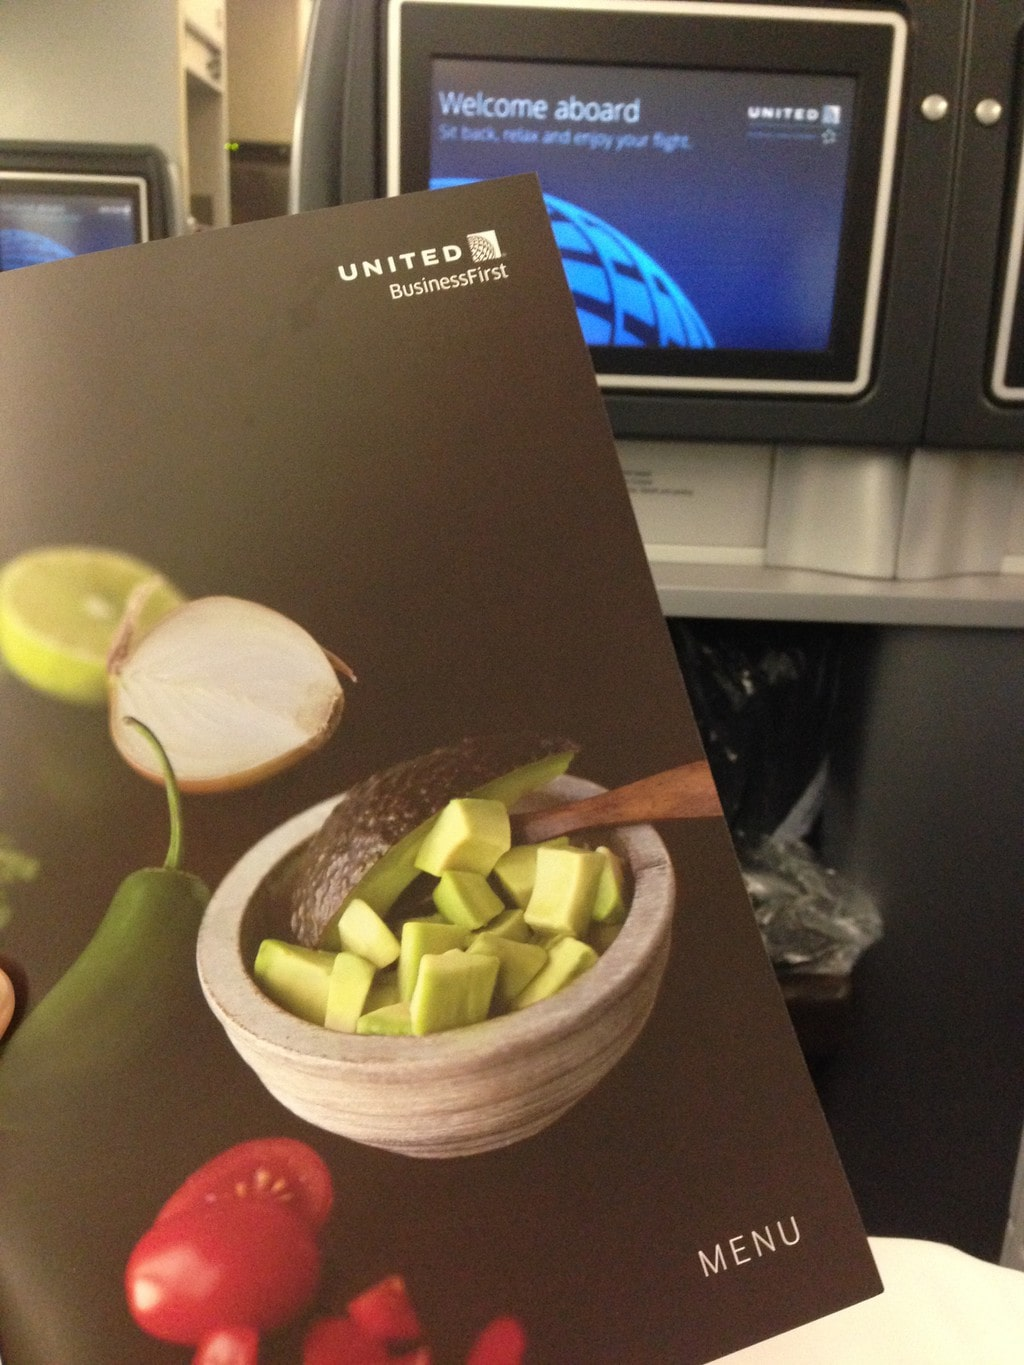 The United Airlines Business Class Menu